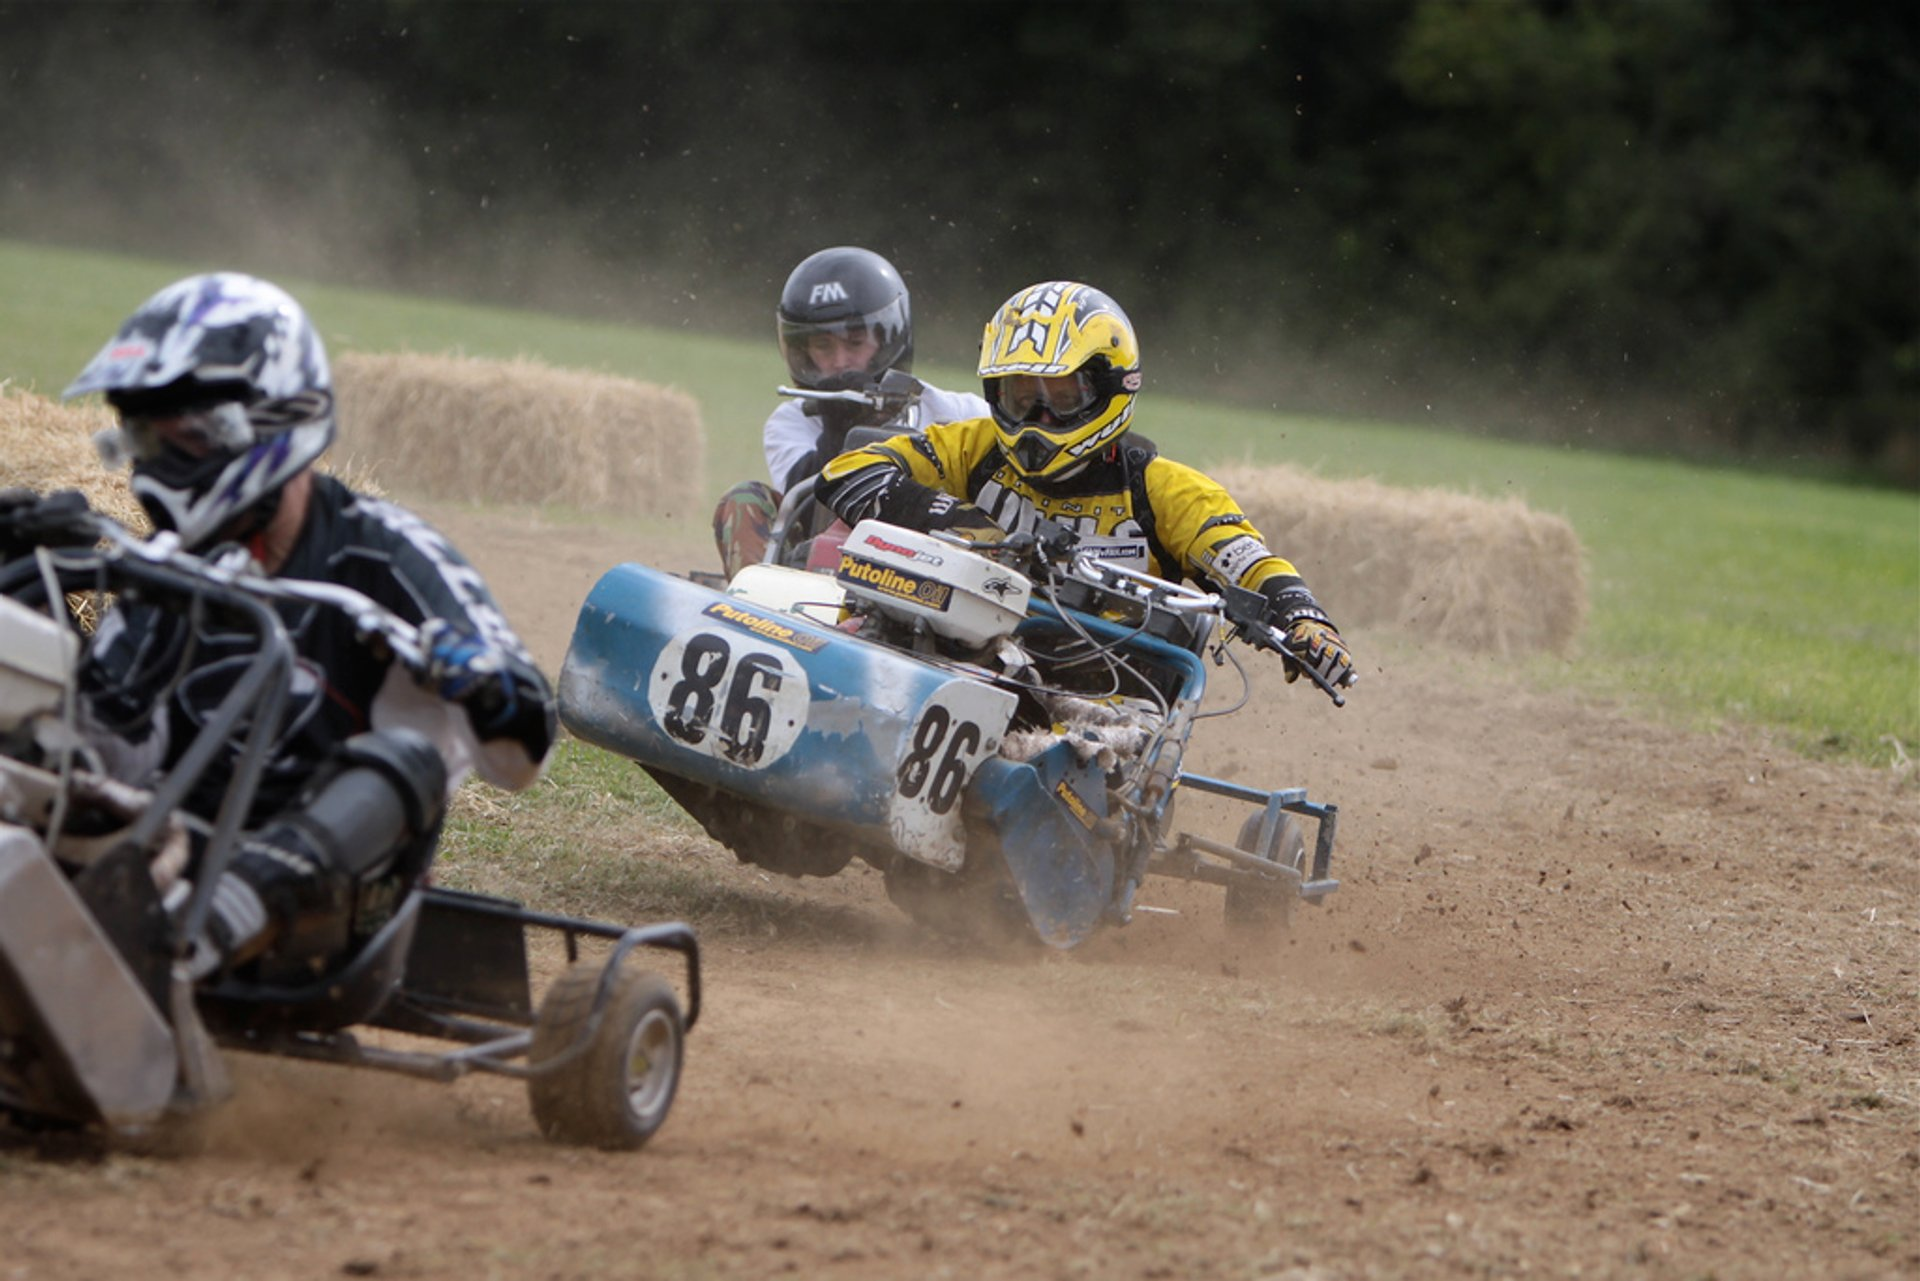 Best time for Lawn Mower Racing World Championships in England 2020